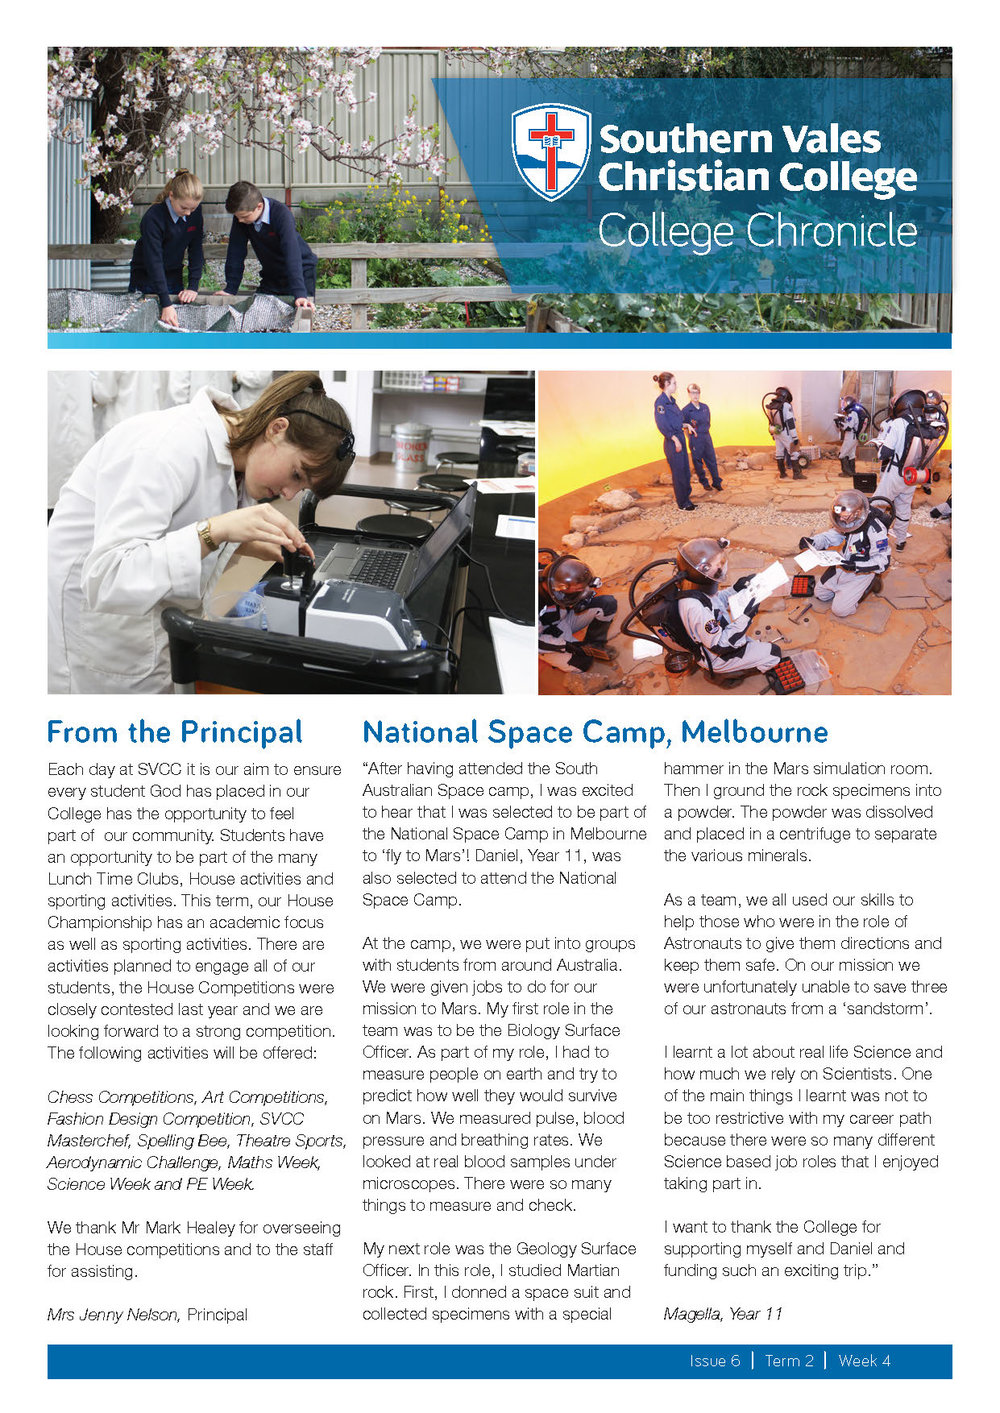 College Chronicle Issue 6 2016_Page_1.jpg